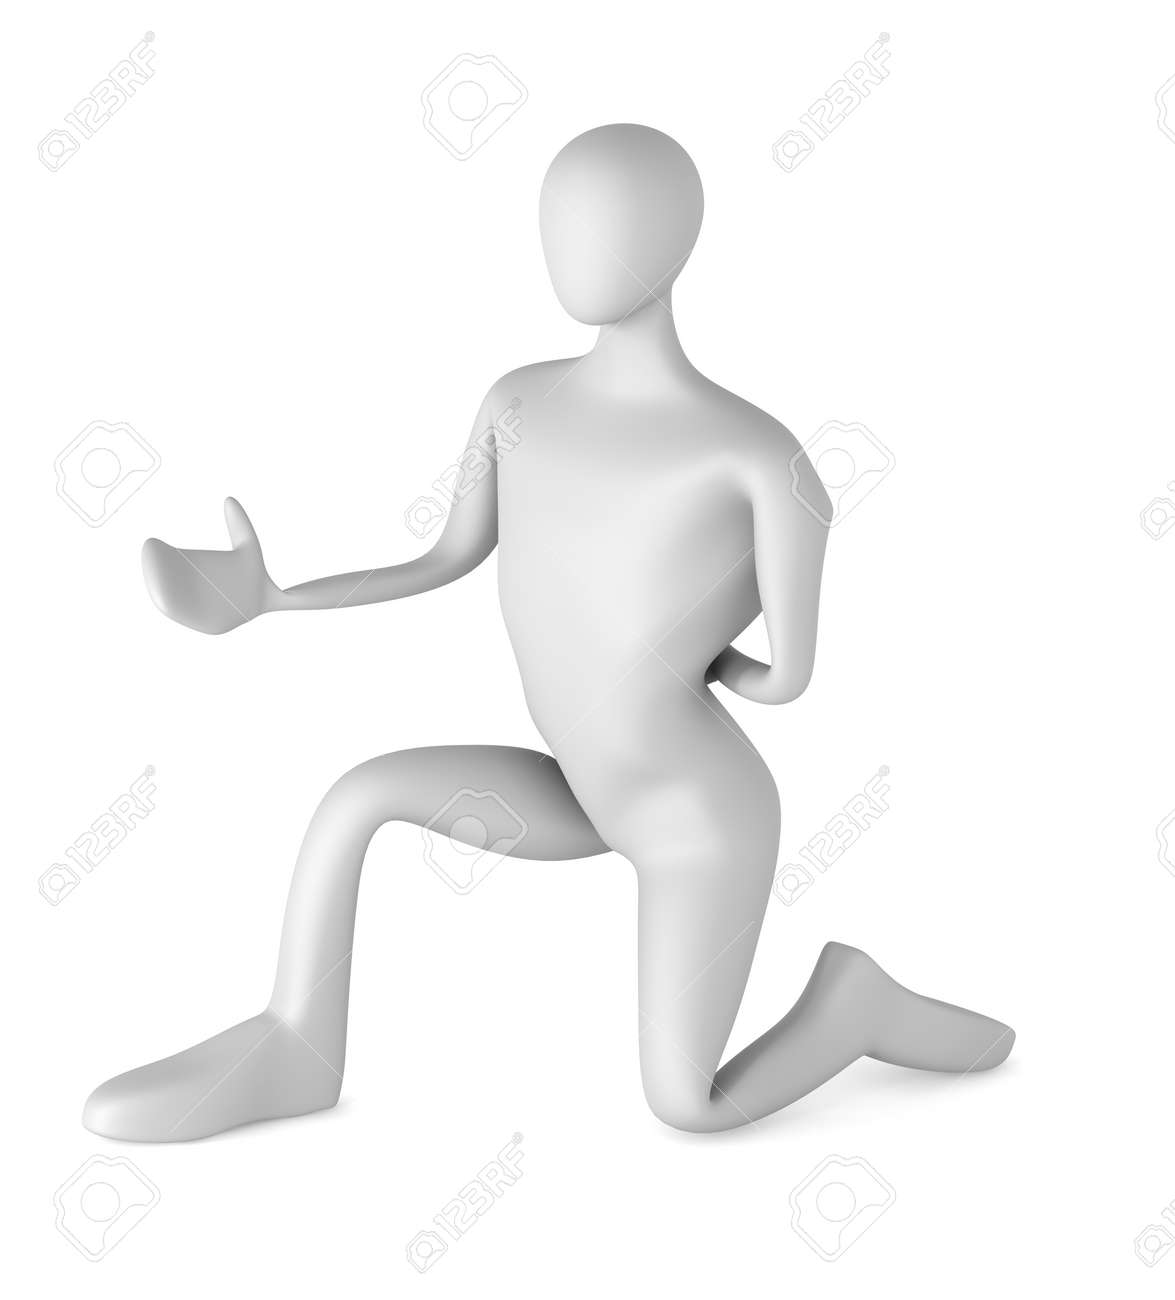 3d man on knees stretching out his arm Stock Photo - 13708671